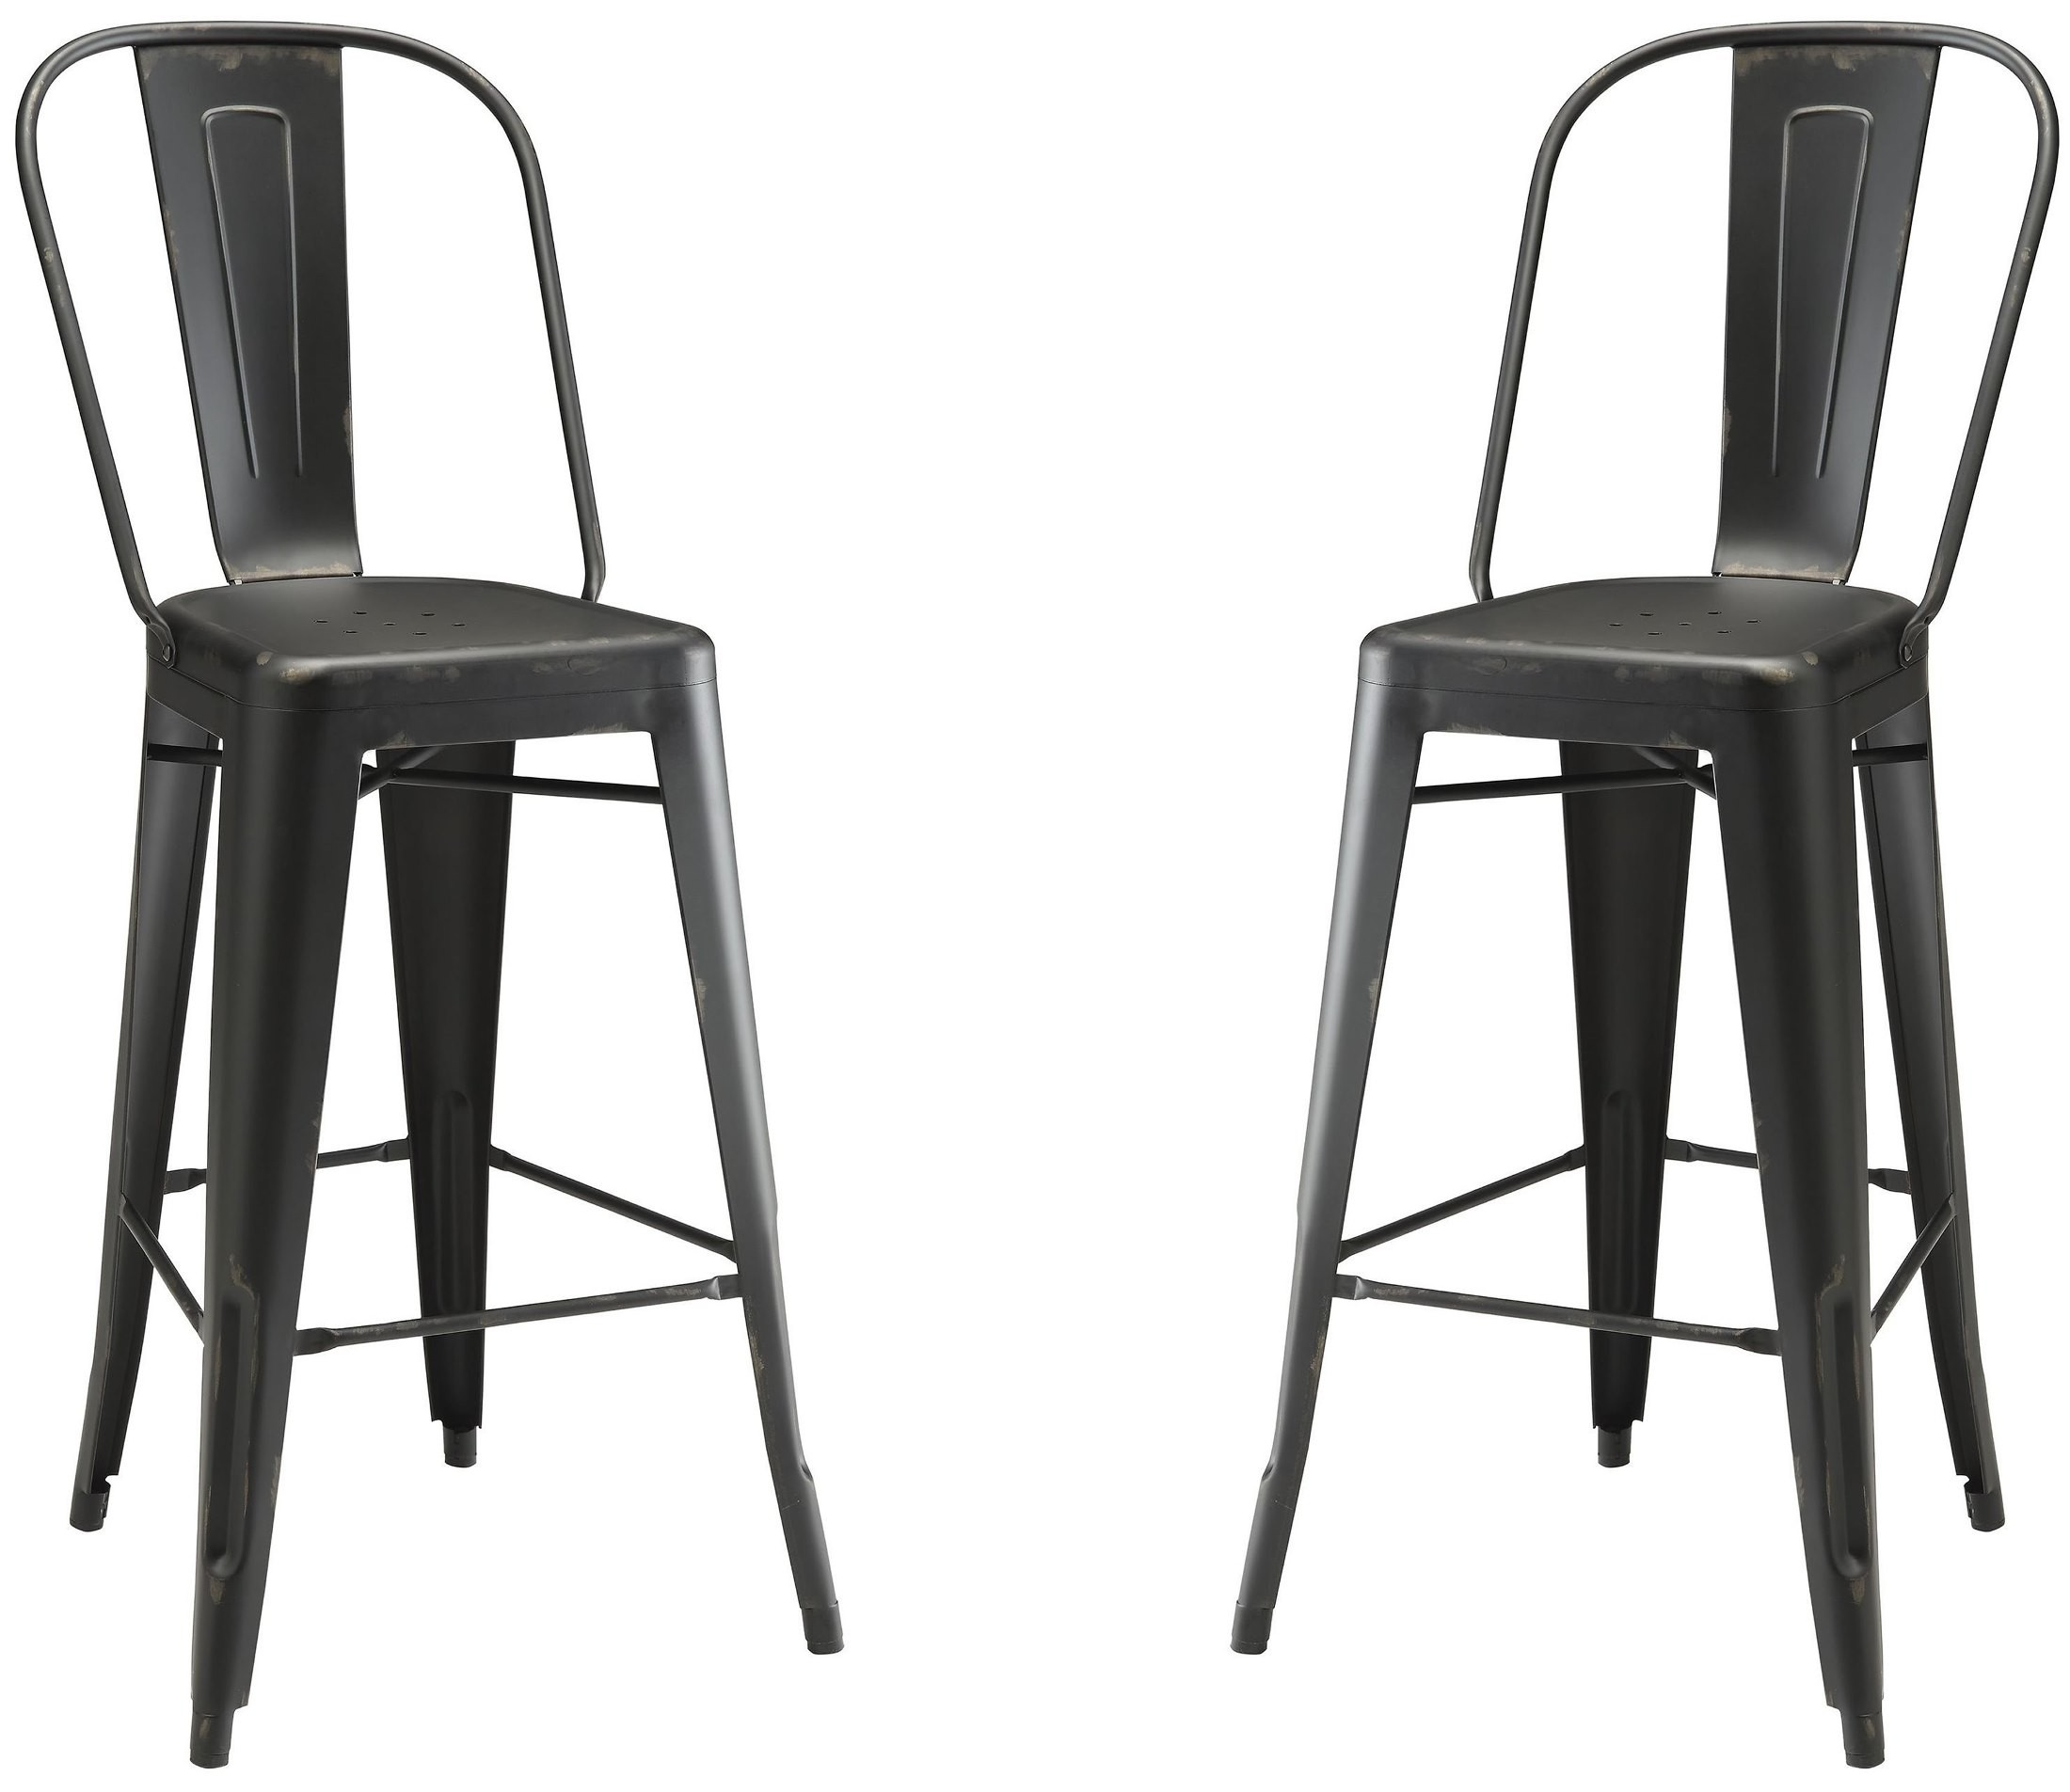 Black Metal Bar Stool Set Of 2 From Coaster Coleman